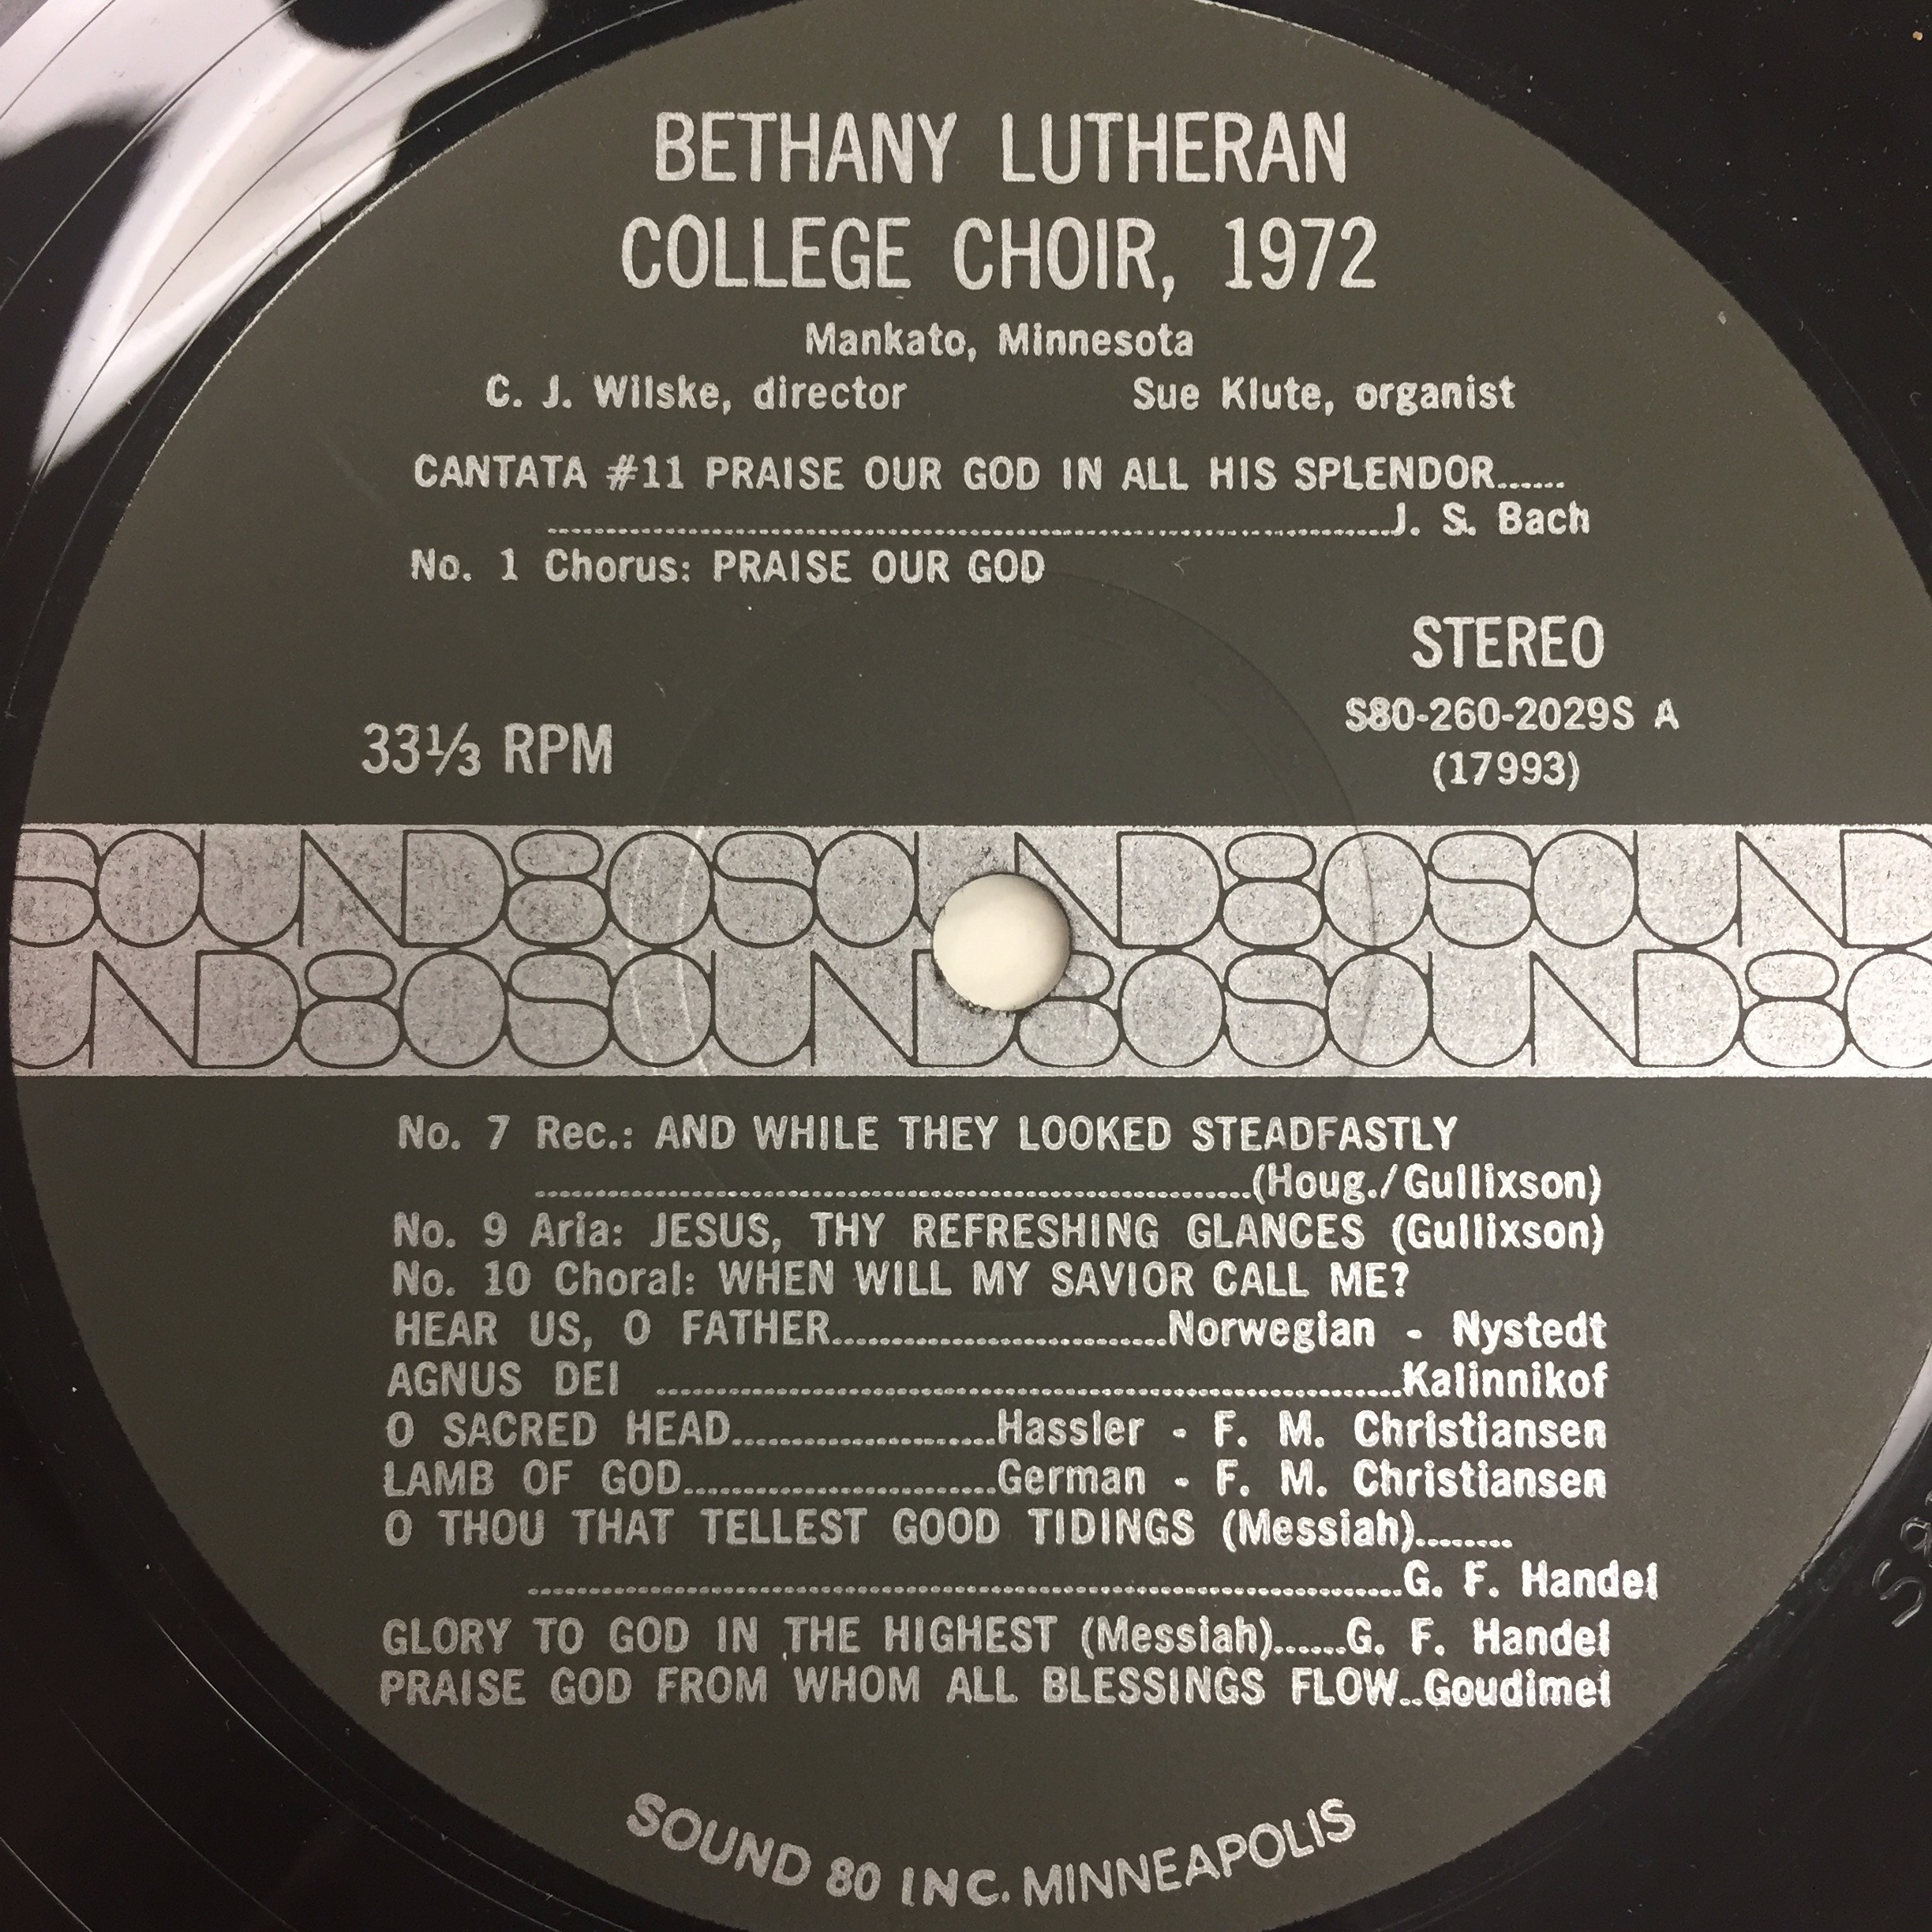 The Bethany Lutheran College Choir 1972